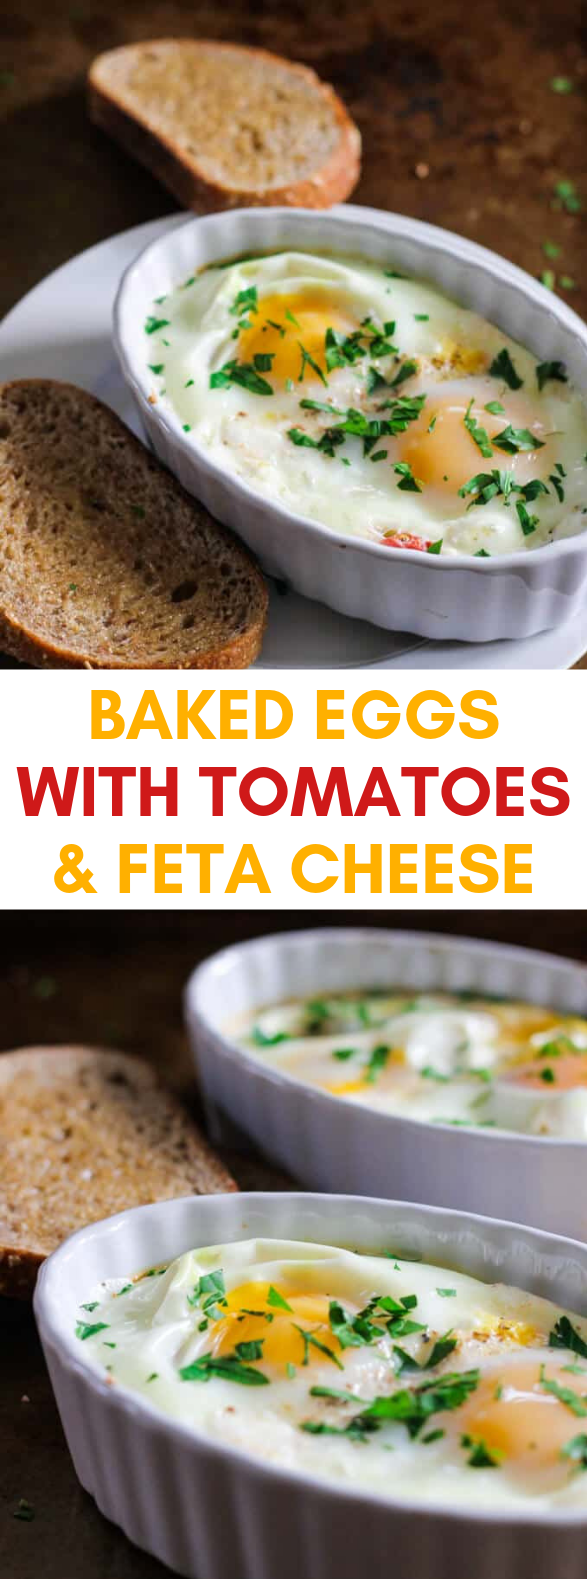 BAKED EGGS WITH TOMATOES AND FETA CHEESE #diet #breakfast